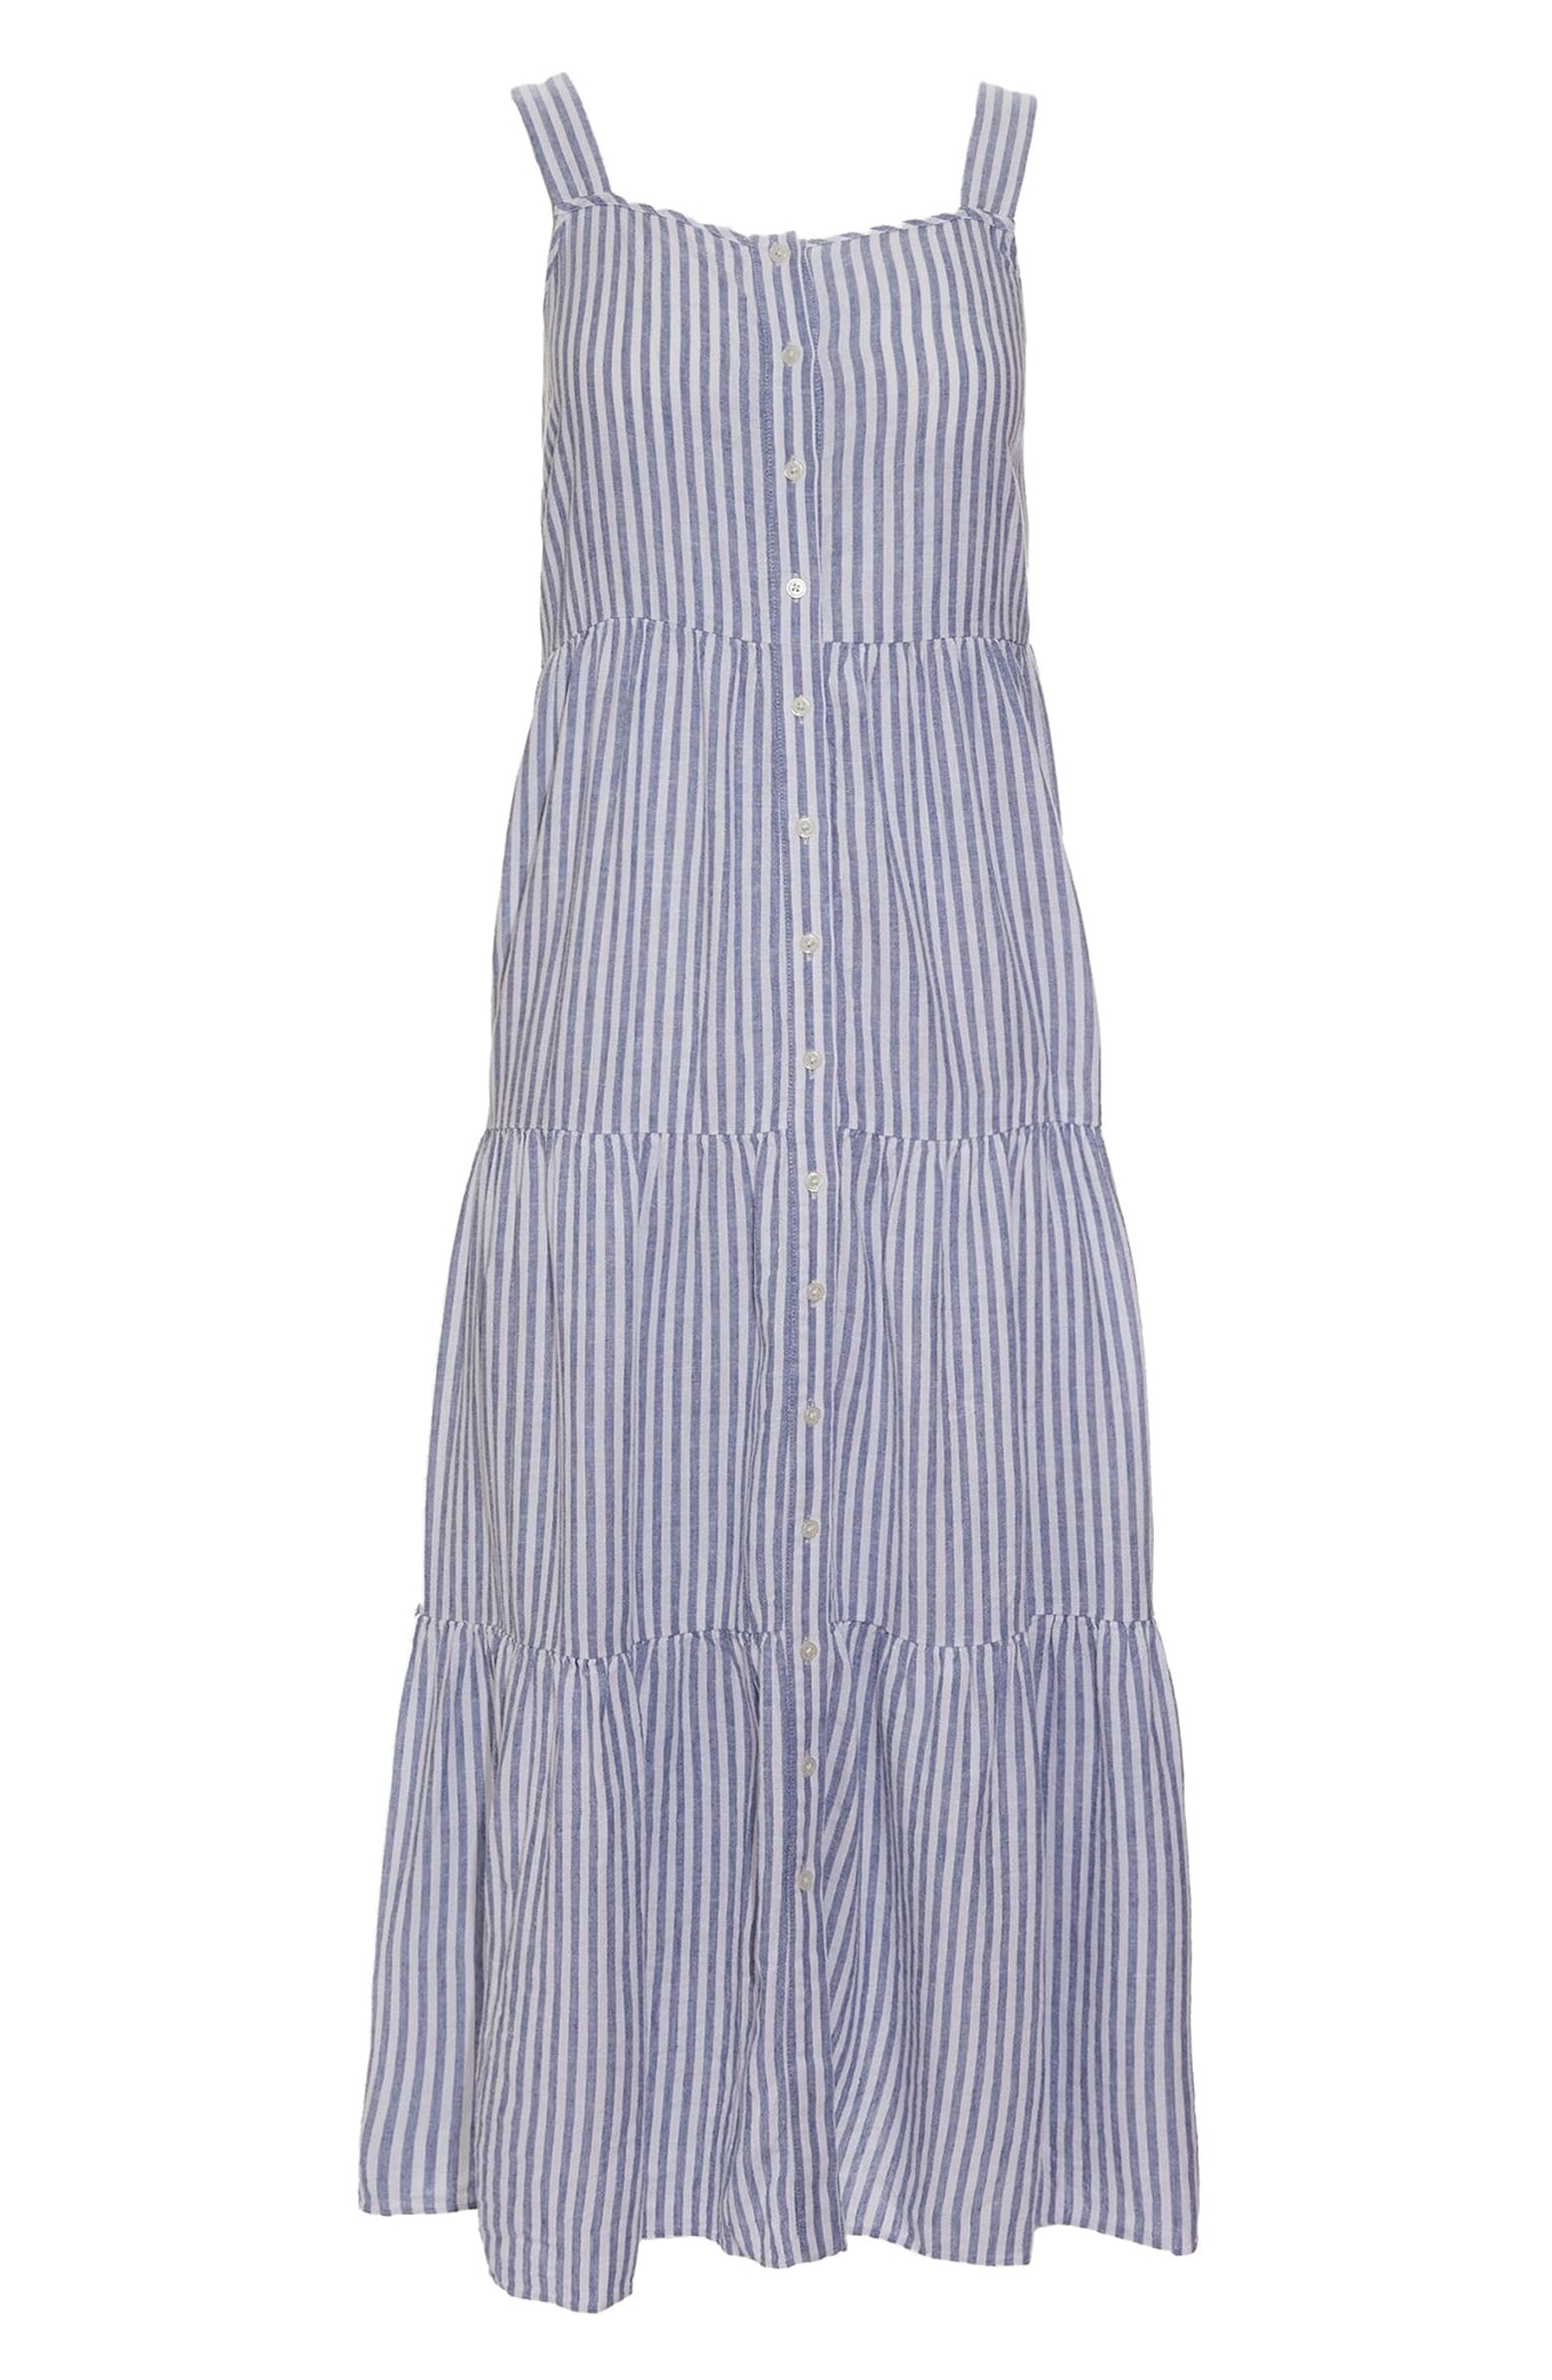 Stripe Button Front Tiered Midi Dress